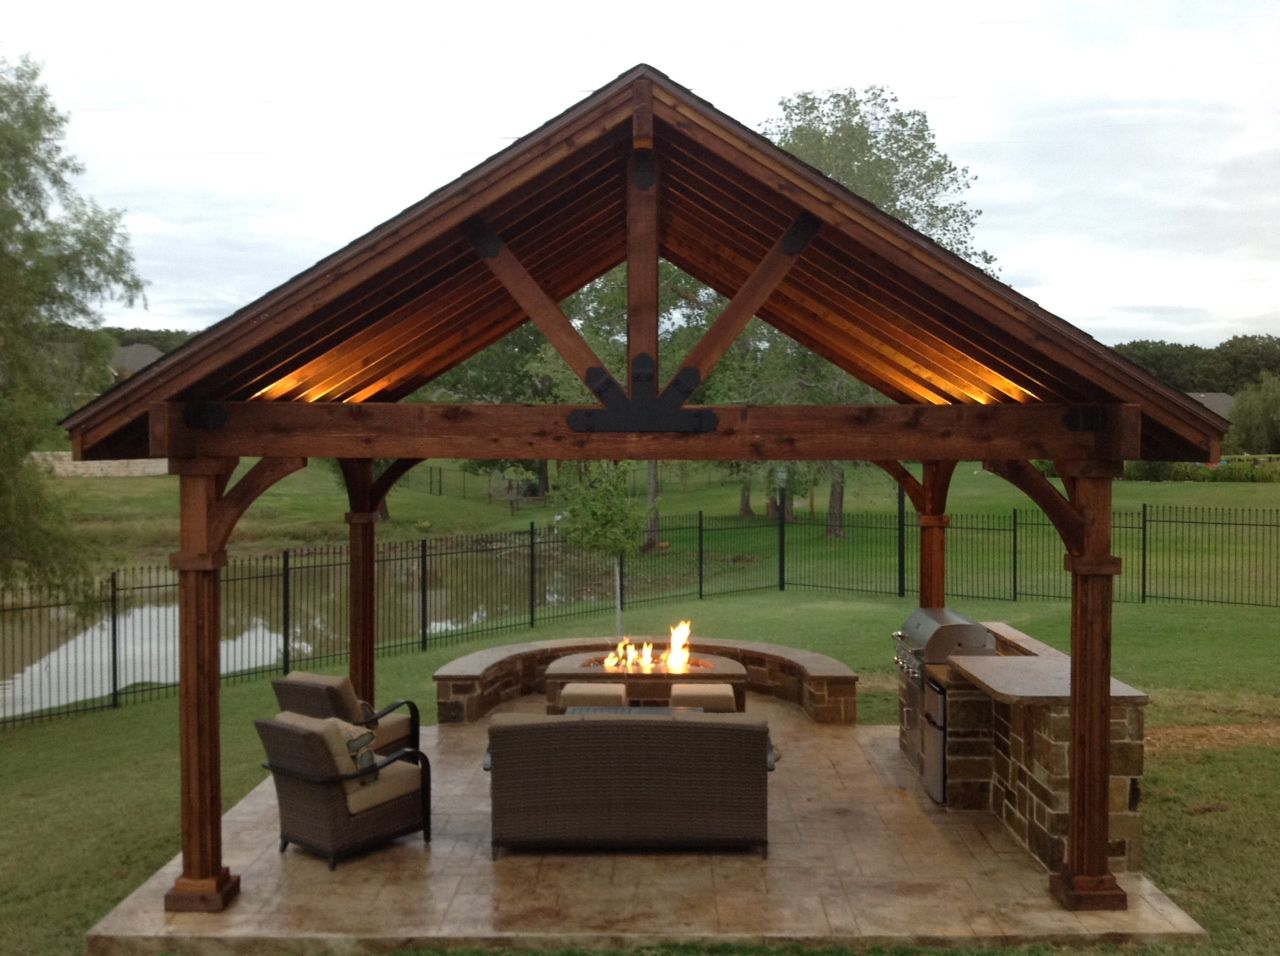 From Simple Diy Deck Projects To More Pro And Expert Builders We Are Posting Your Projects To Recognize Gre Backyard Pavilion Outdoor Pavilion Backyard Patio